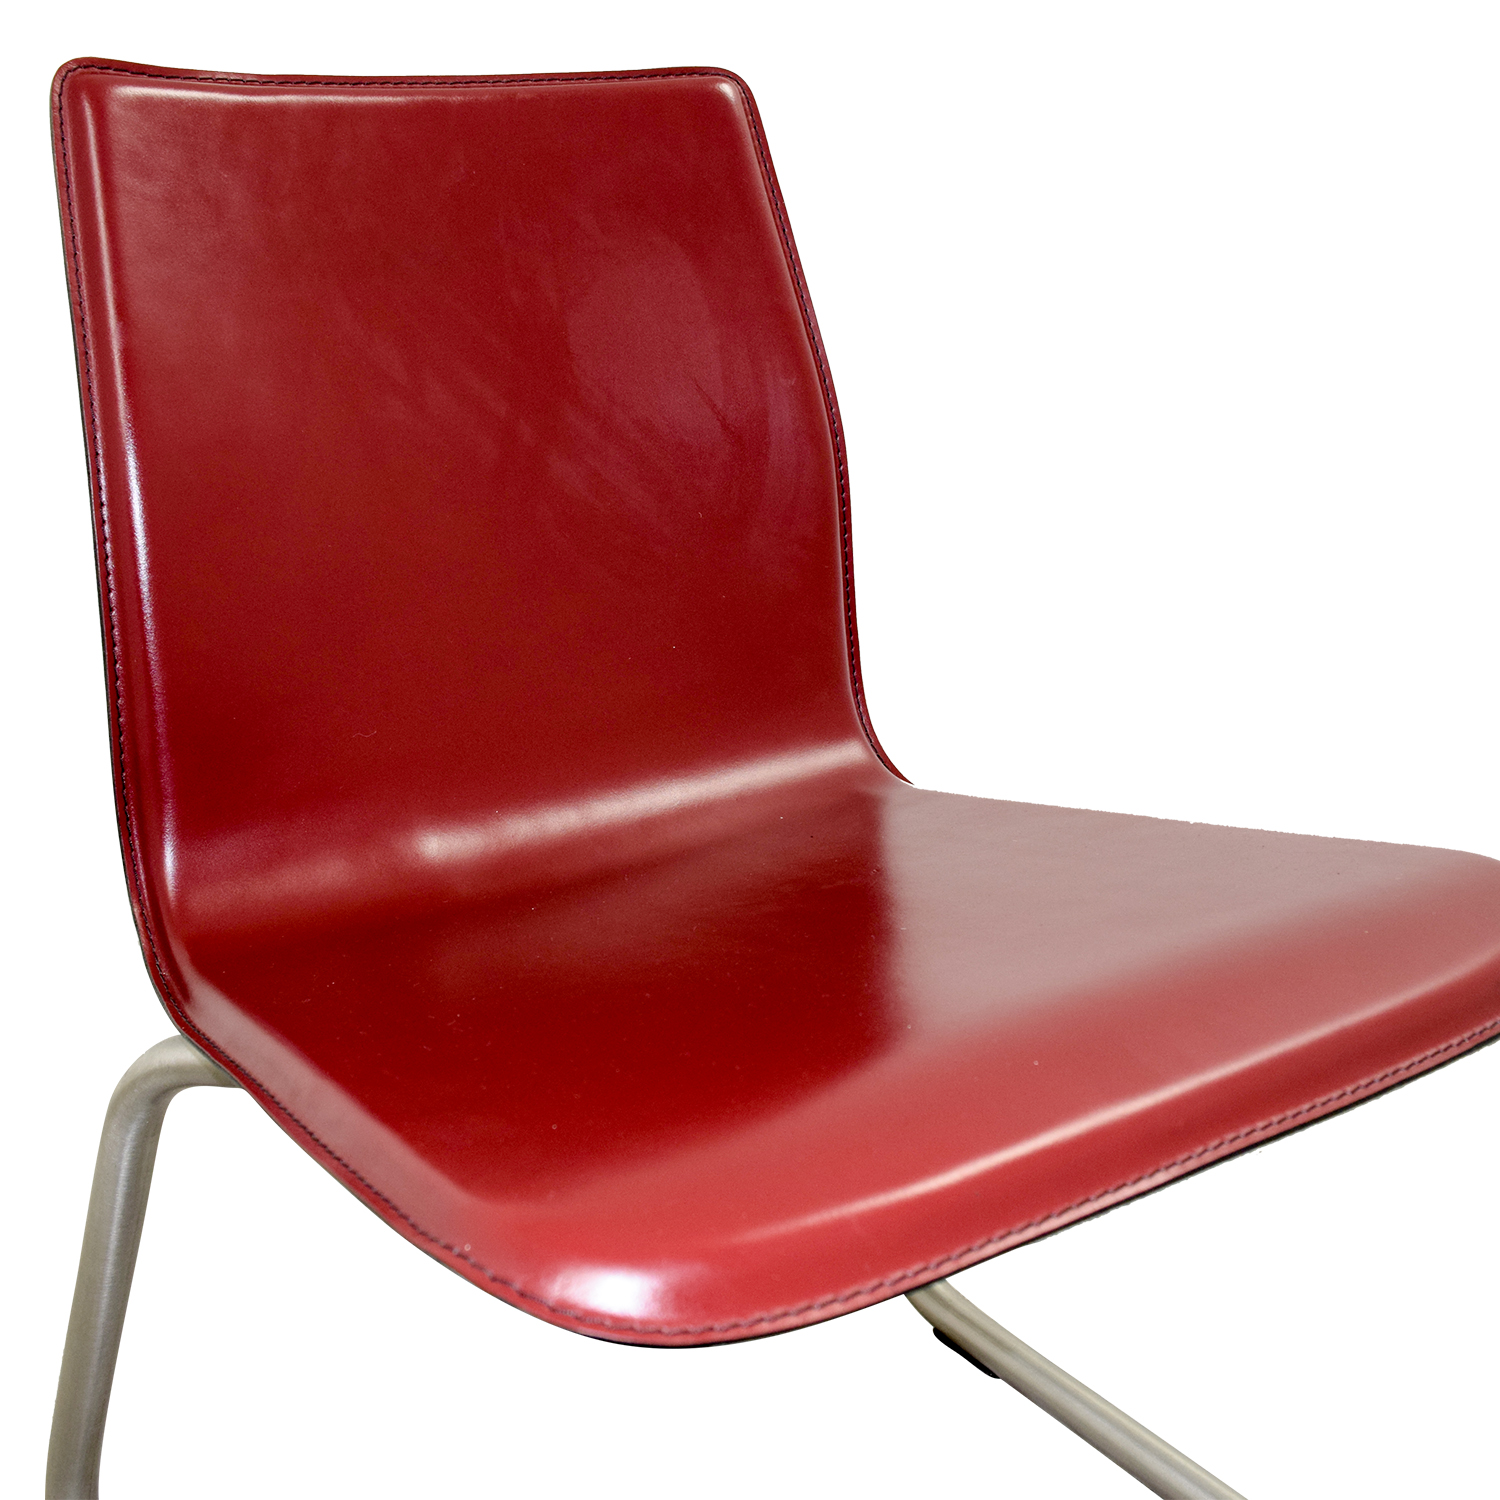 68% OFF Frighetto Industries Frighetto Industries Modern Red